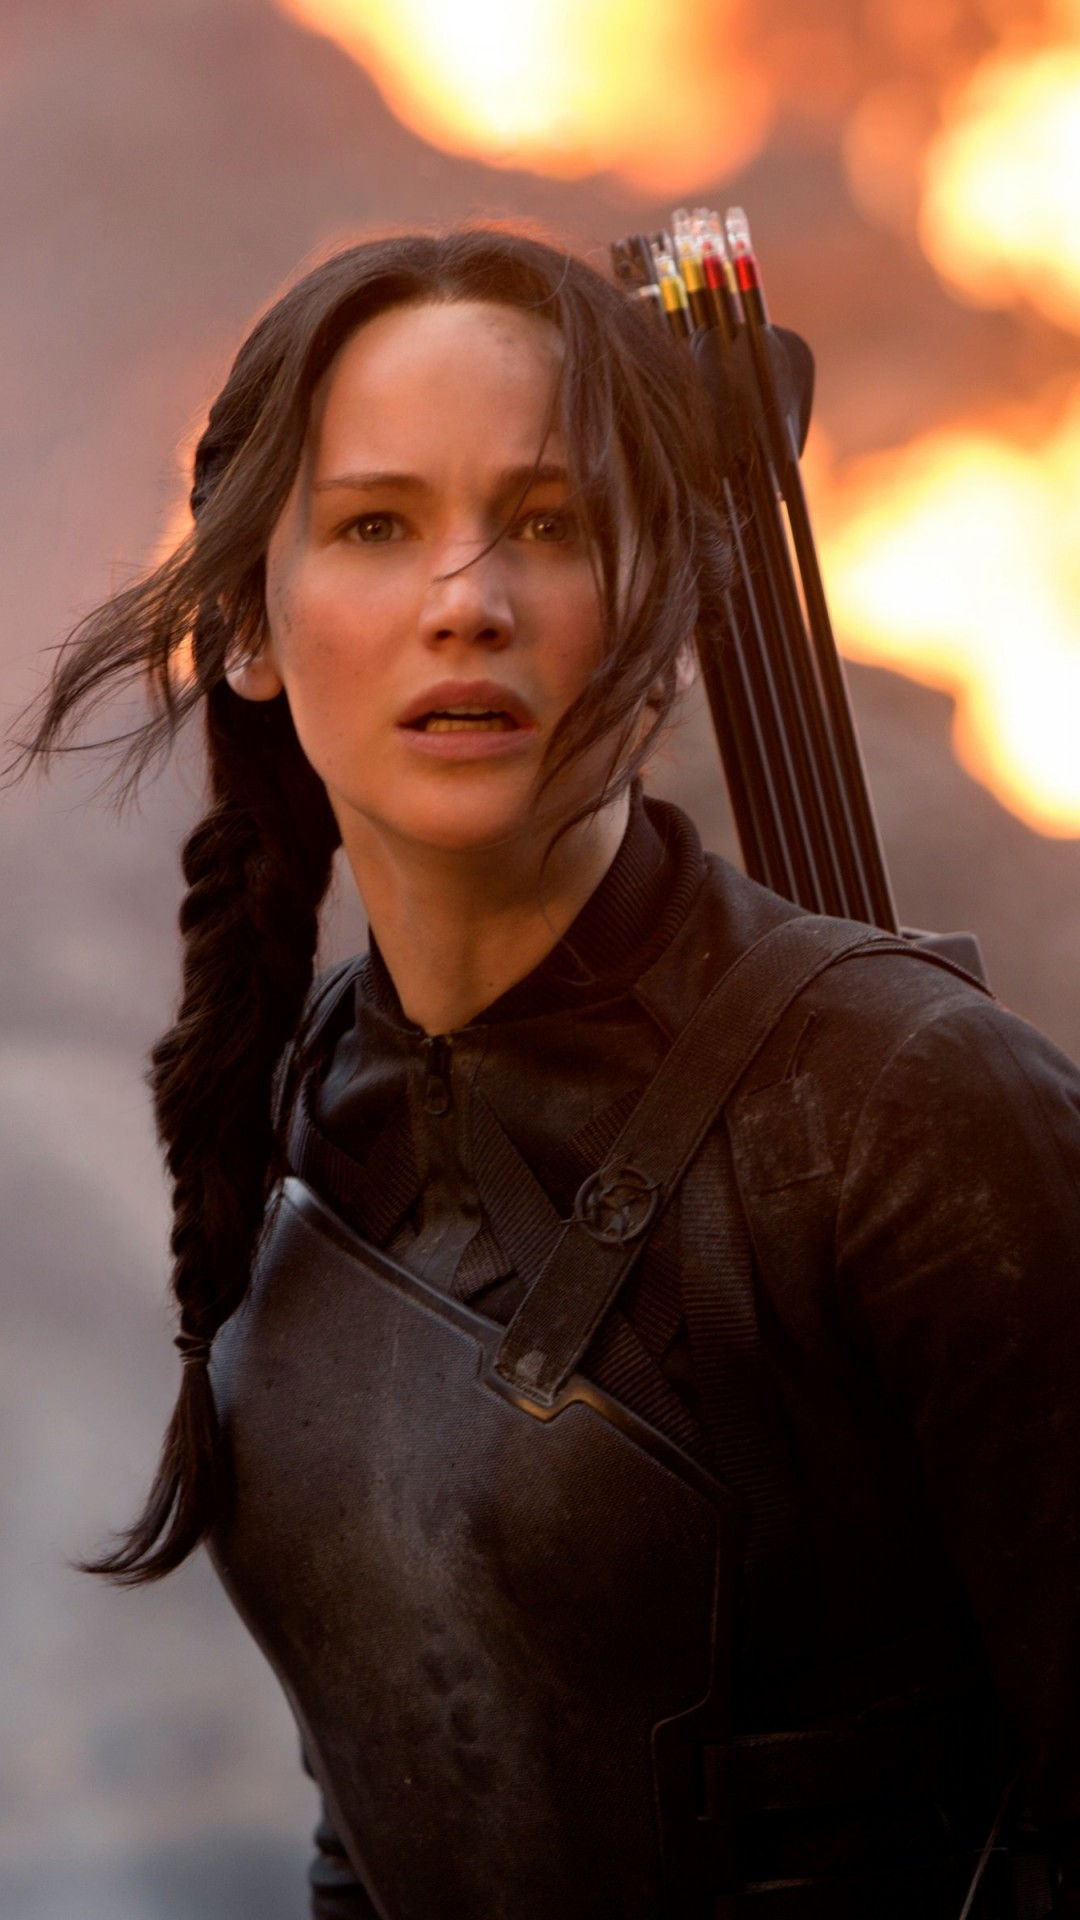 Jennifer Lawrence in The Hunger Games Wallpaper for LG G2